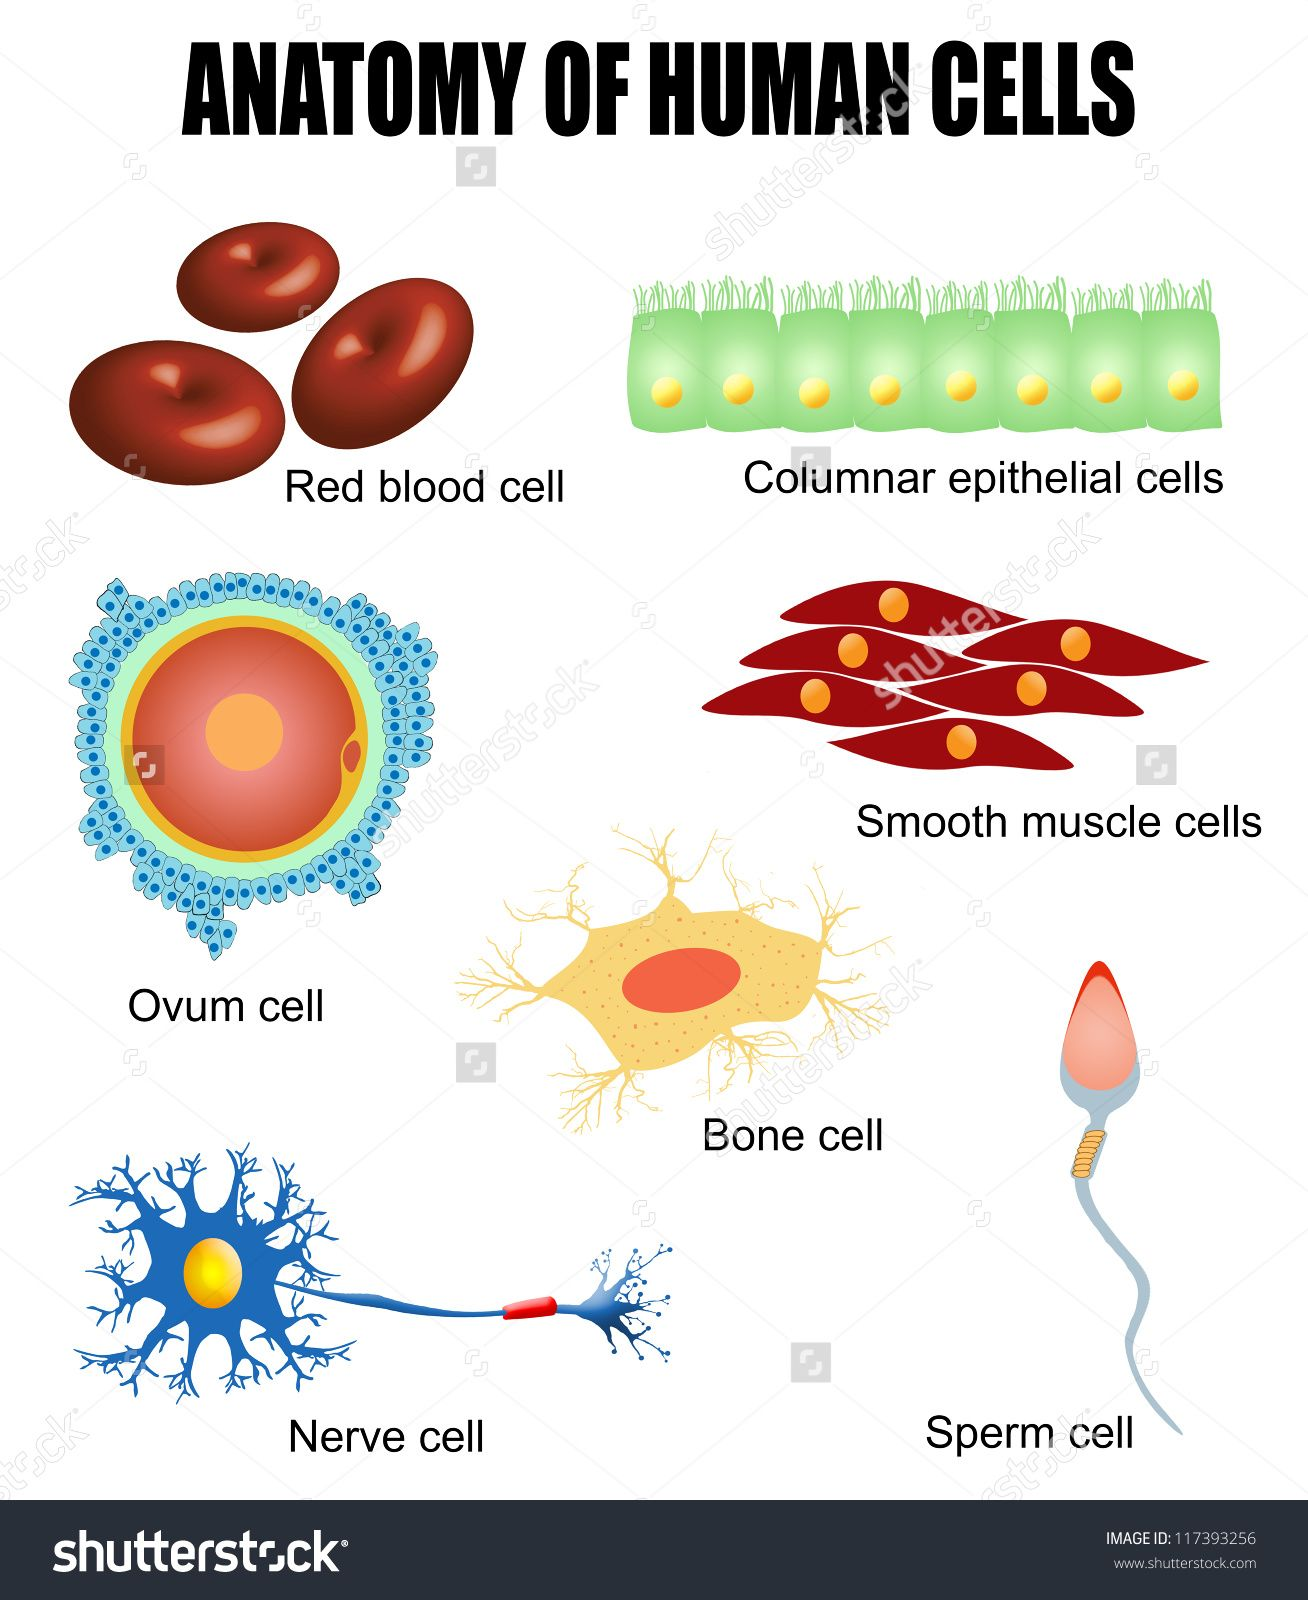 small resolution of anatomy of human cells useful for education in schools and clinics vector illustration